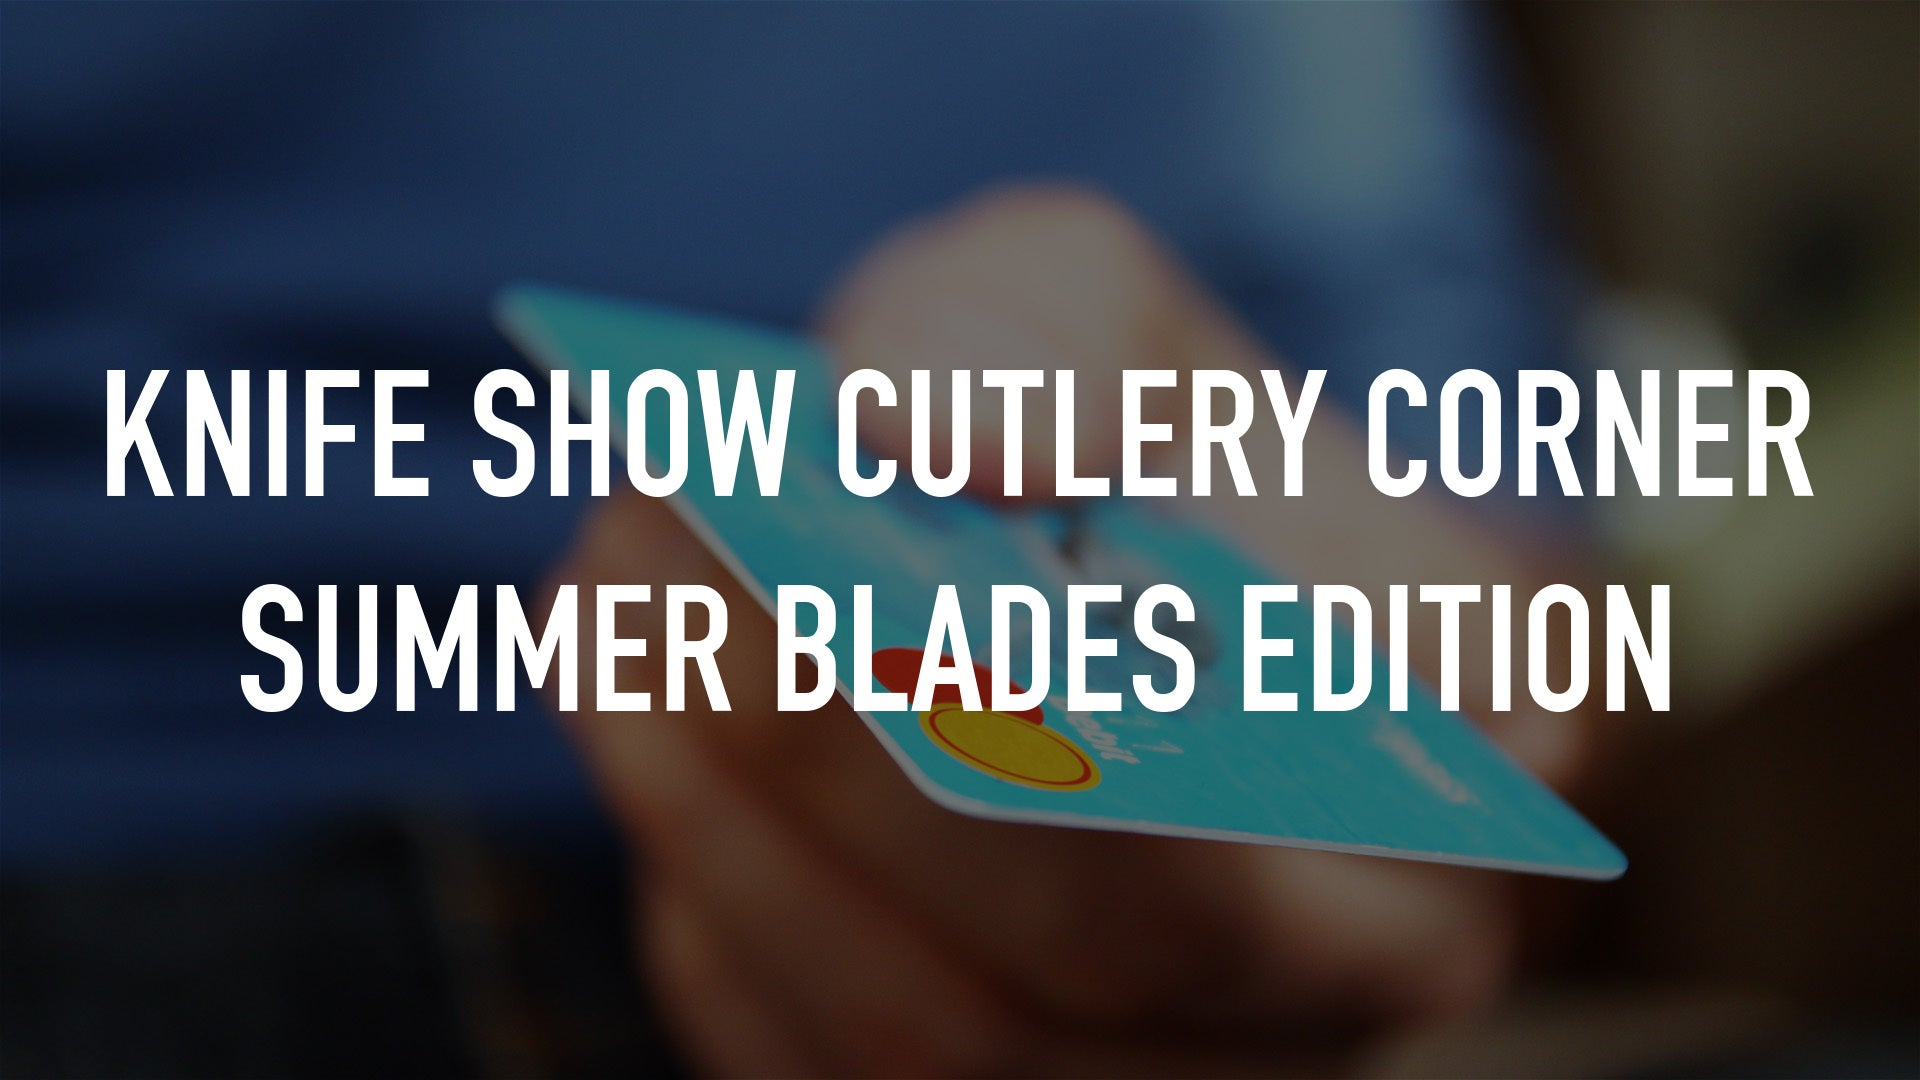 Knife Show Cutlery Corner Summer Blades edition